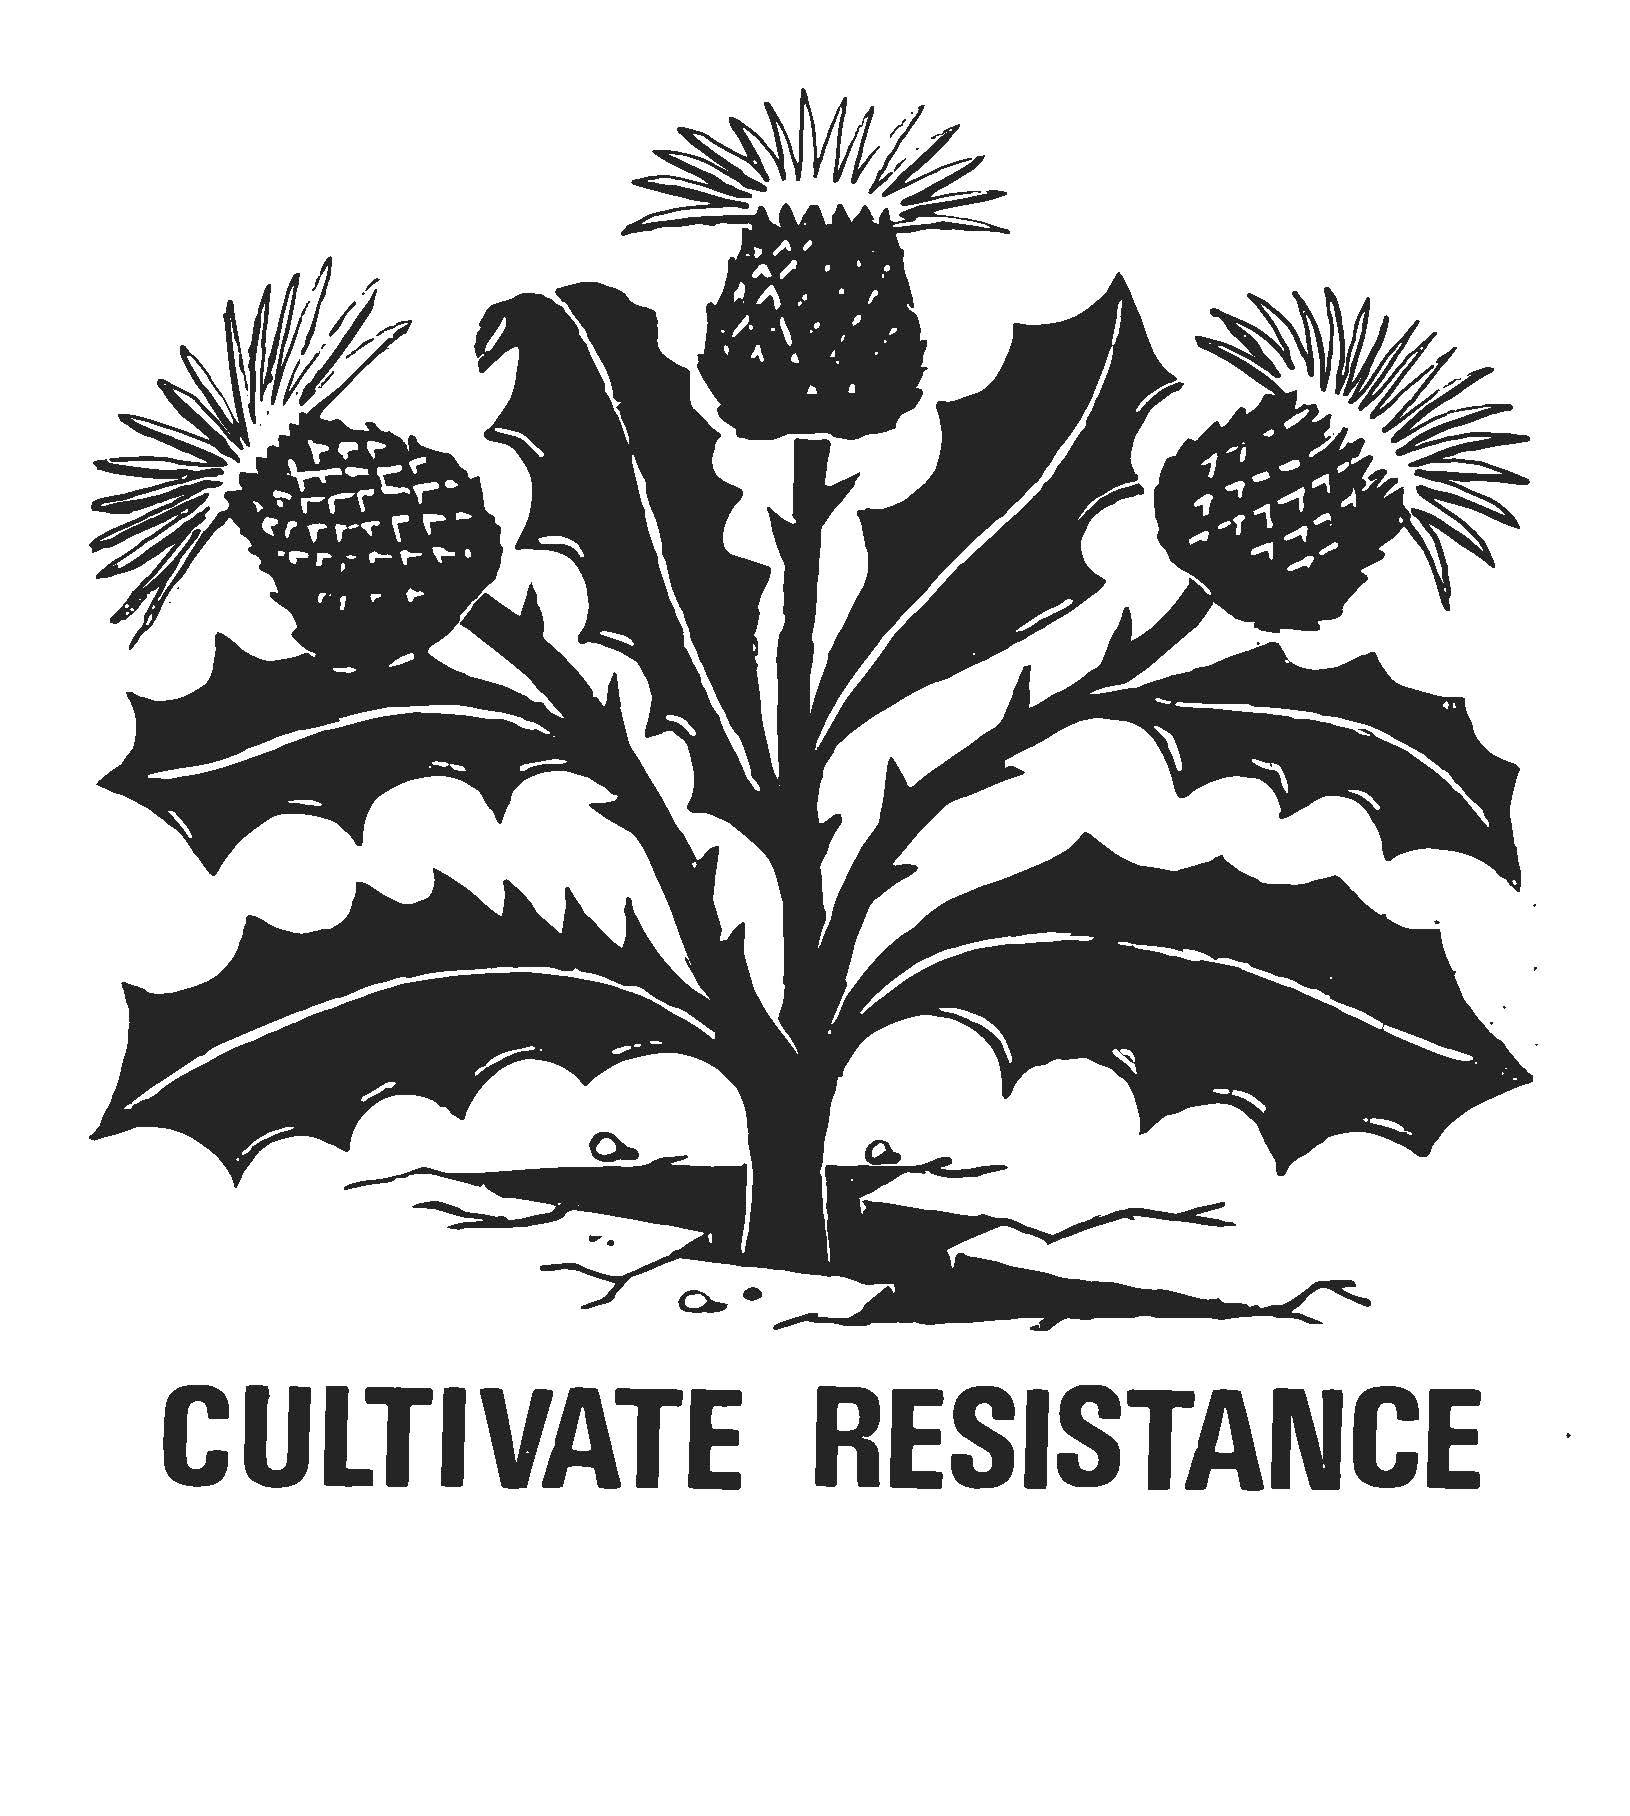 """Dandelion growing out of concrete with words that say """"Cultivate Resistance"""""""